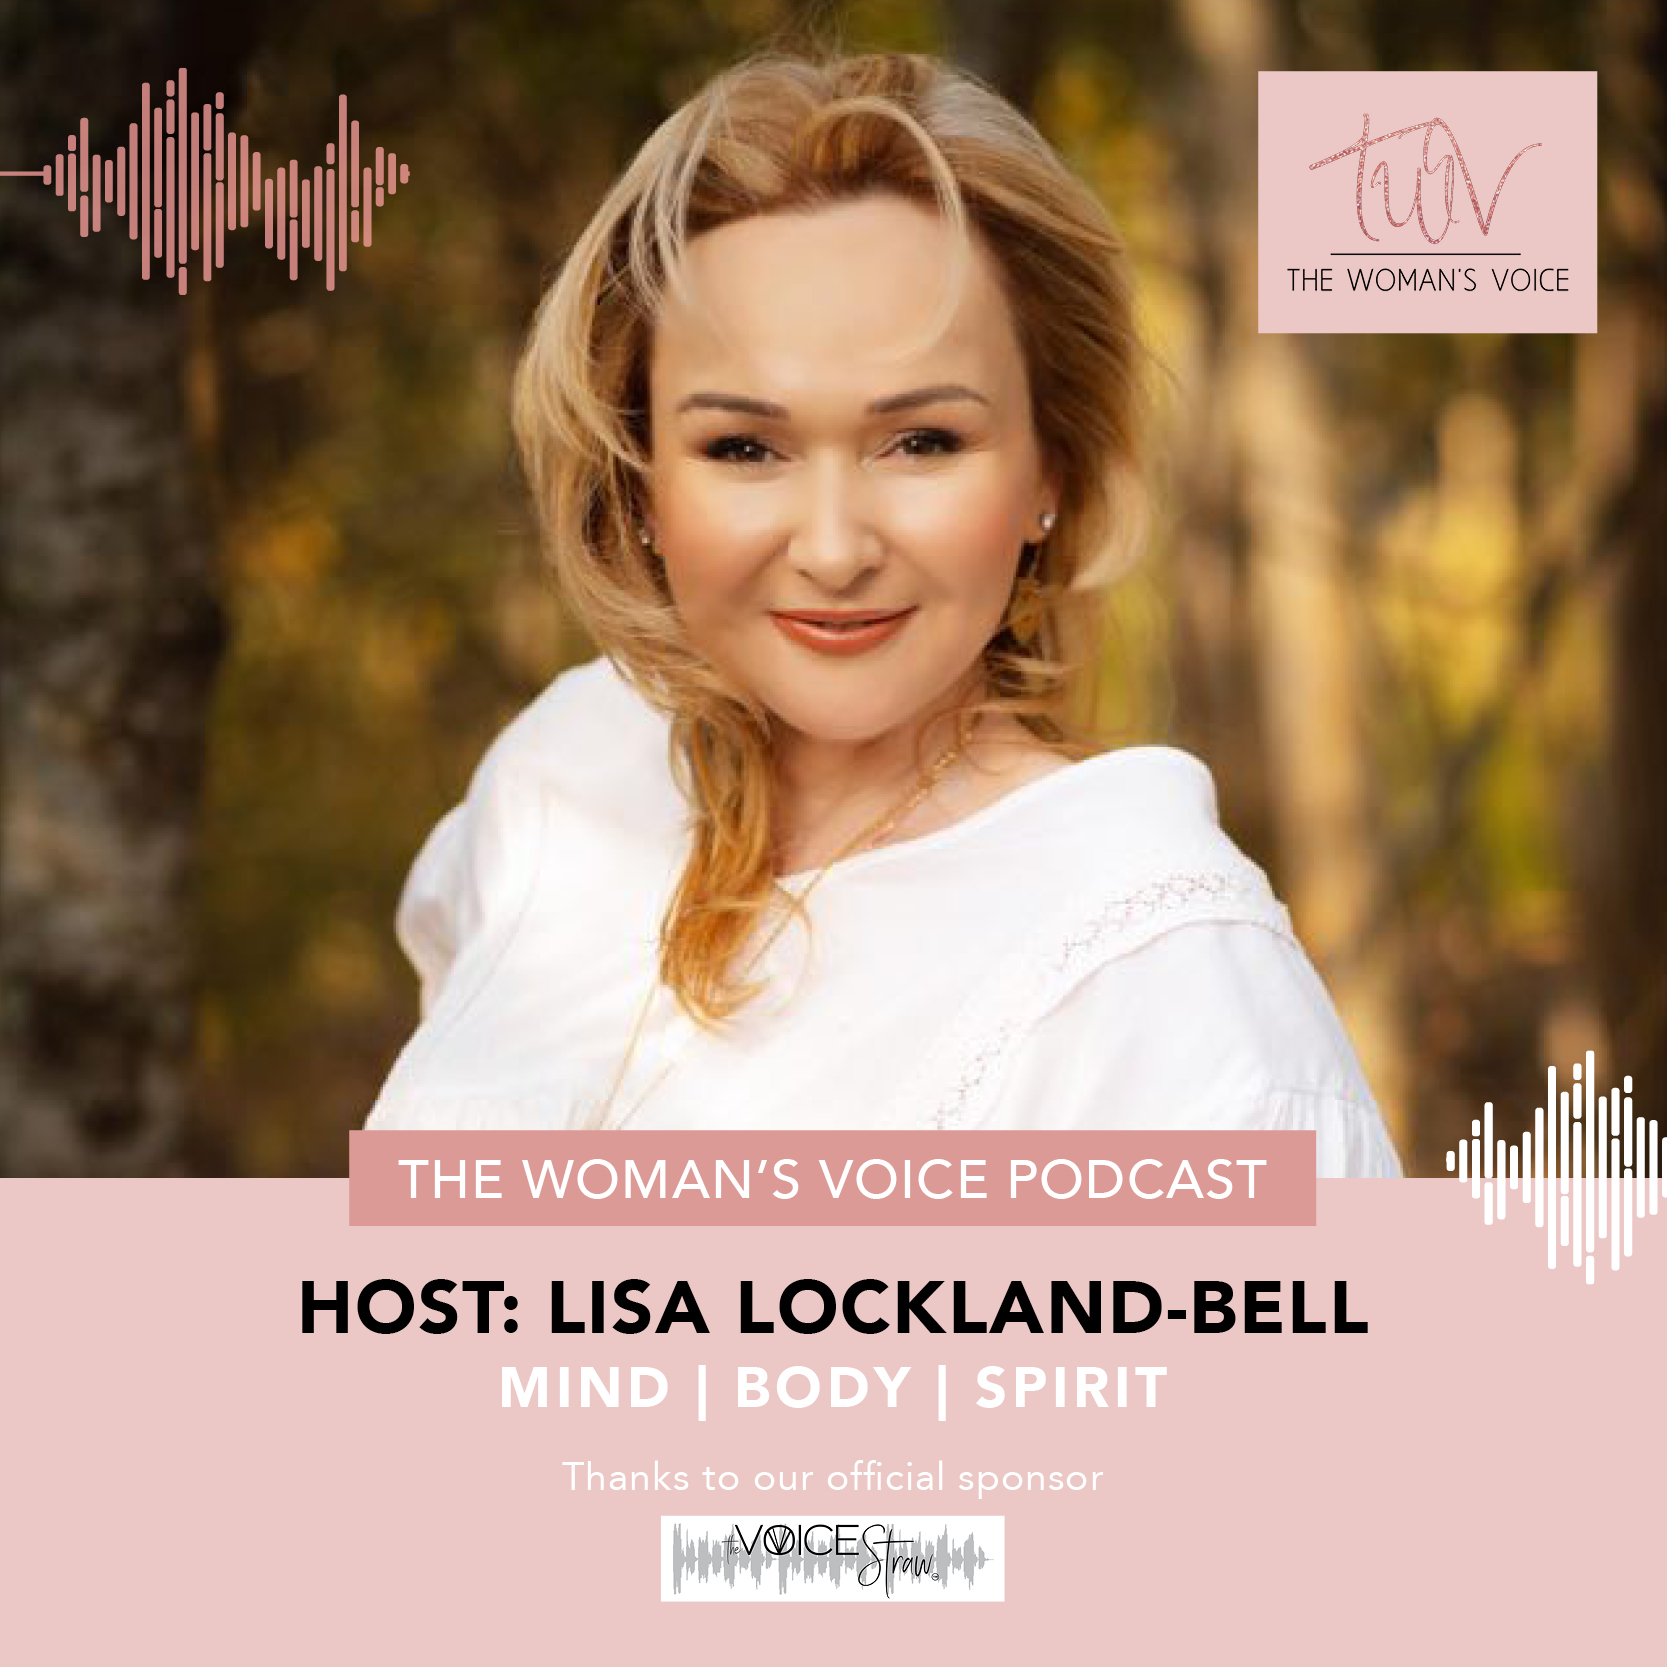 LLB_The Womans Voice_Podcast_Generic_LinkedIn Post